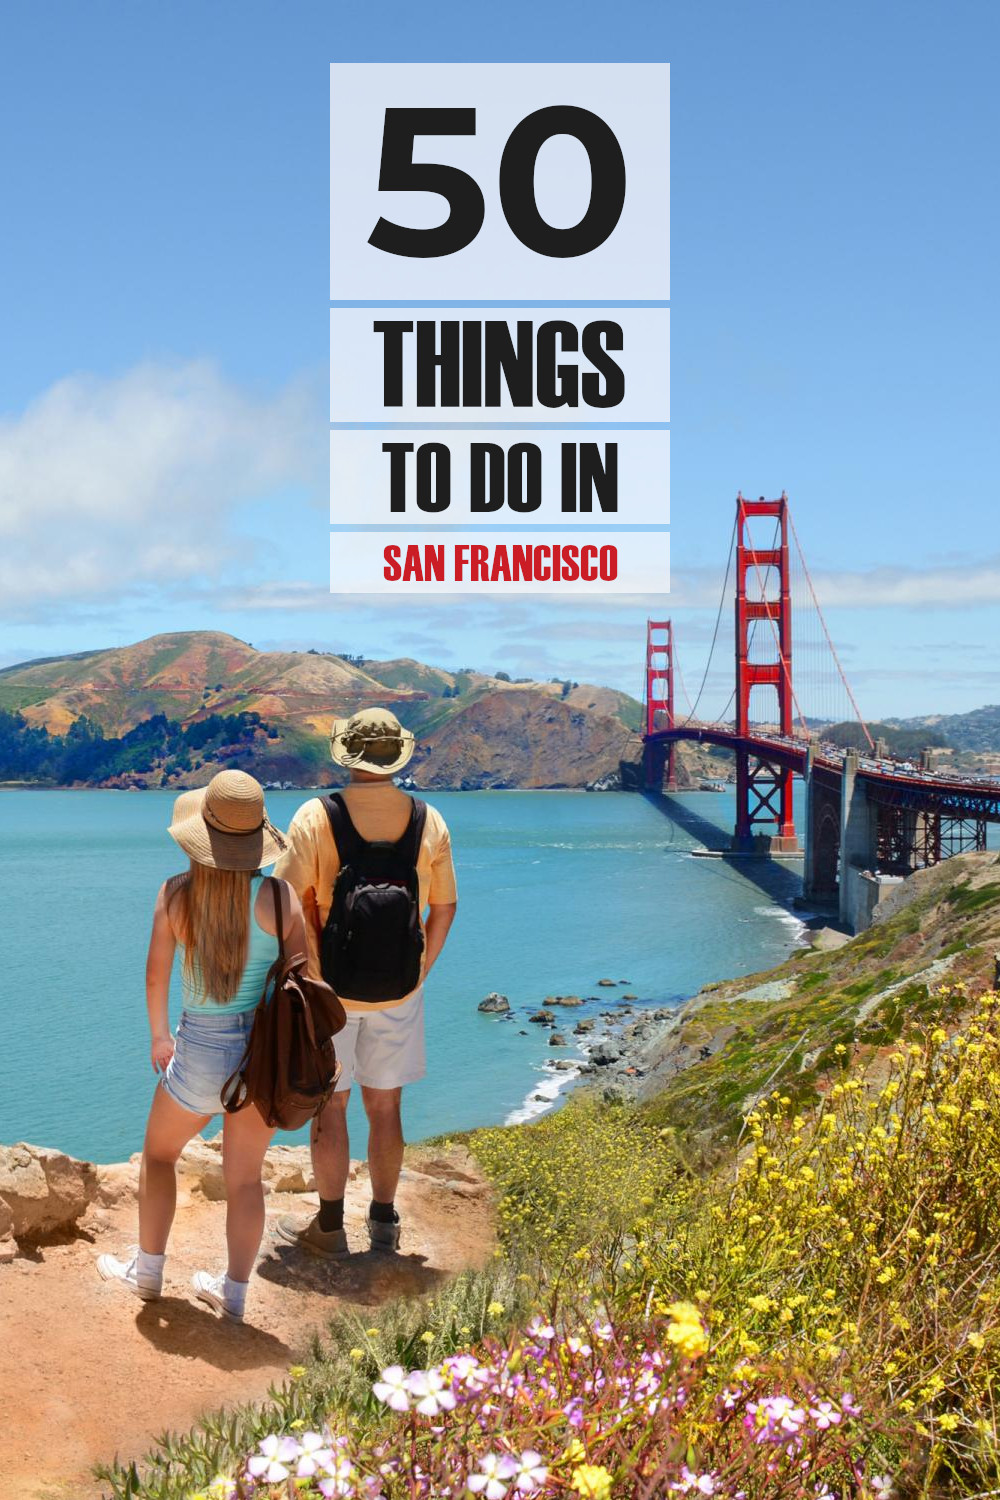 50 things to do in San Francisco - the ultimate guide to visiting the city with things to do from museums to parks and main sights